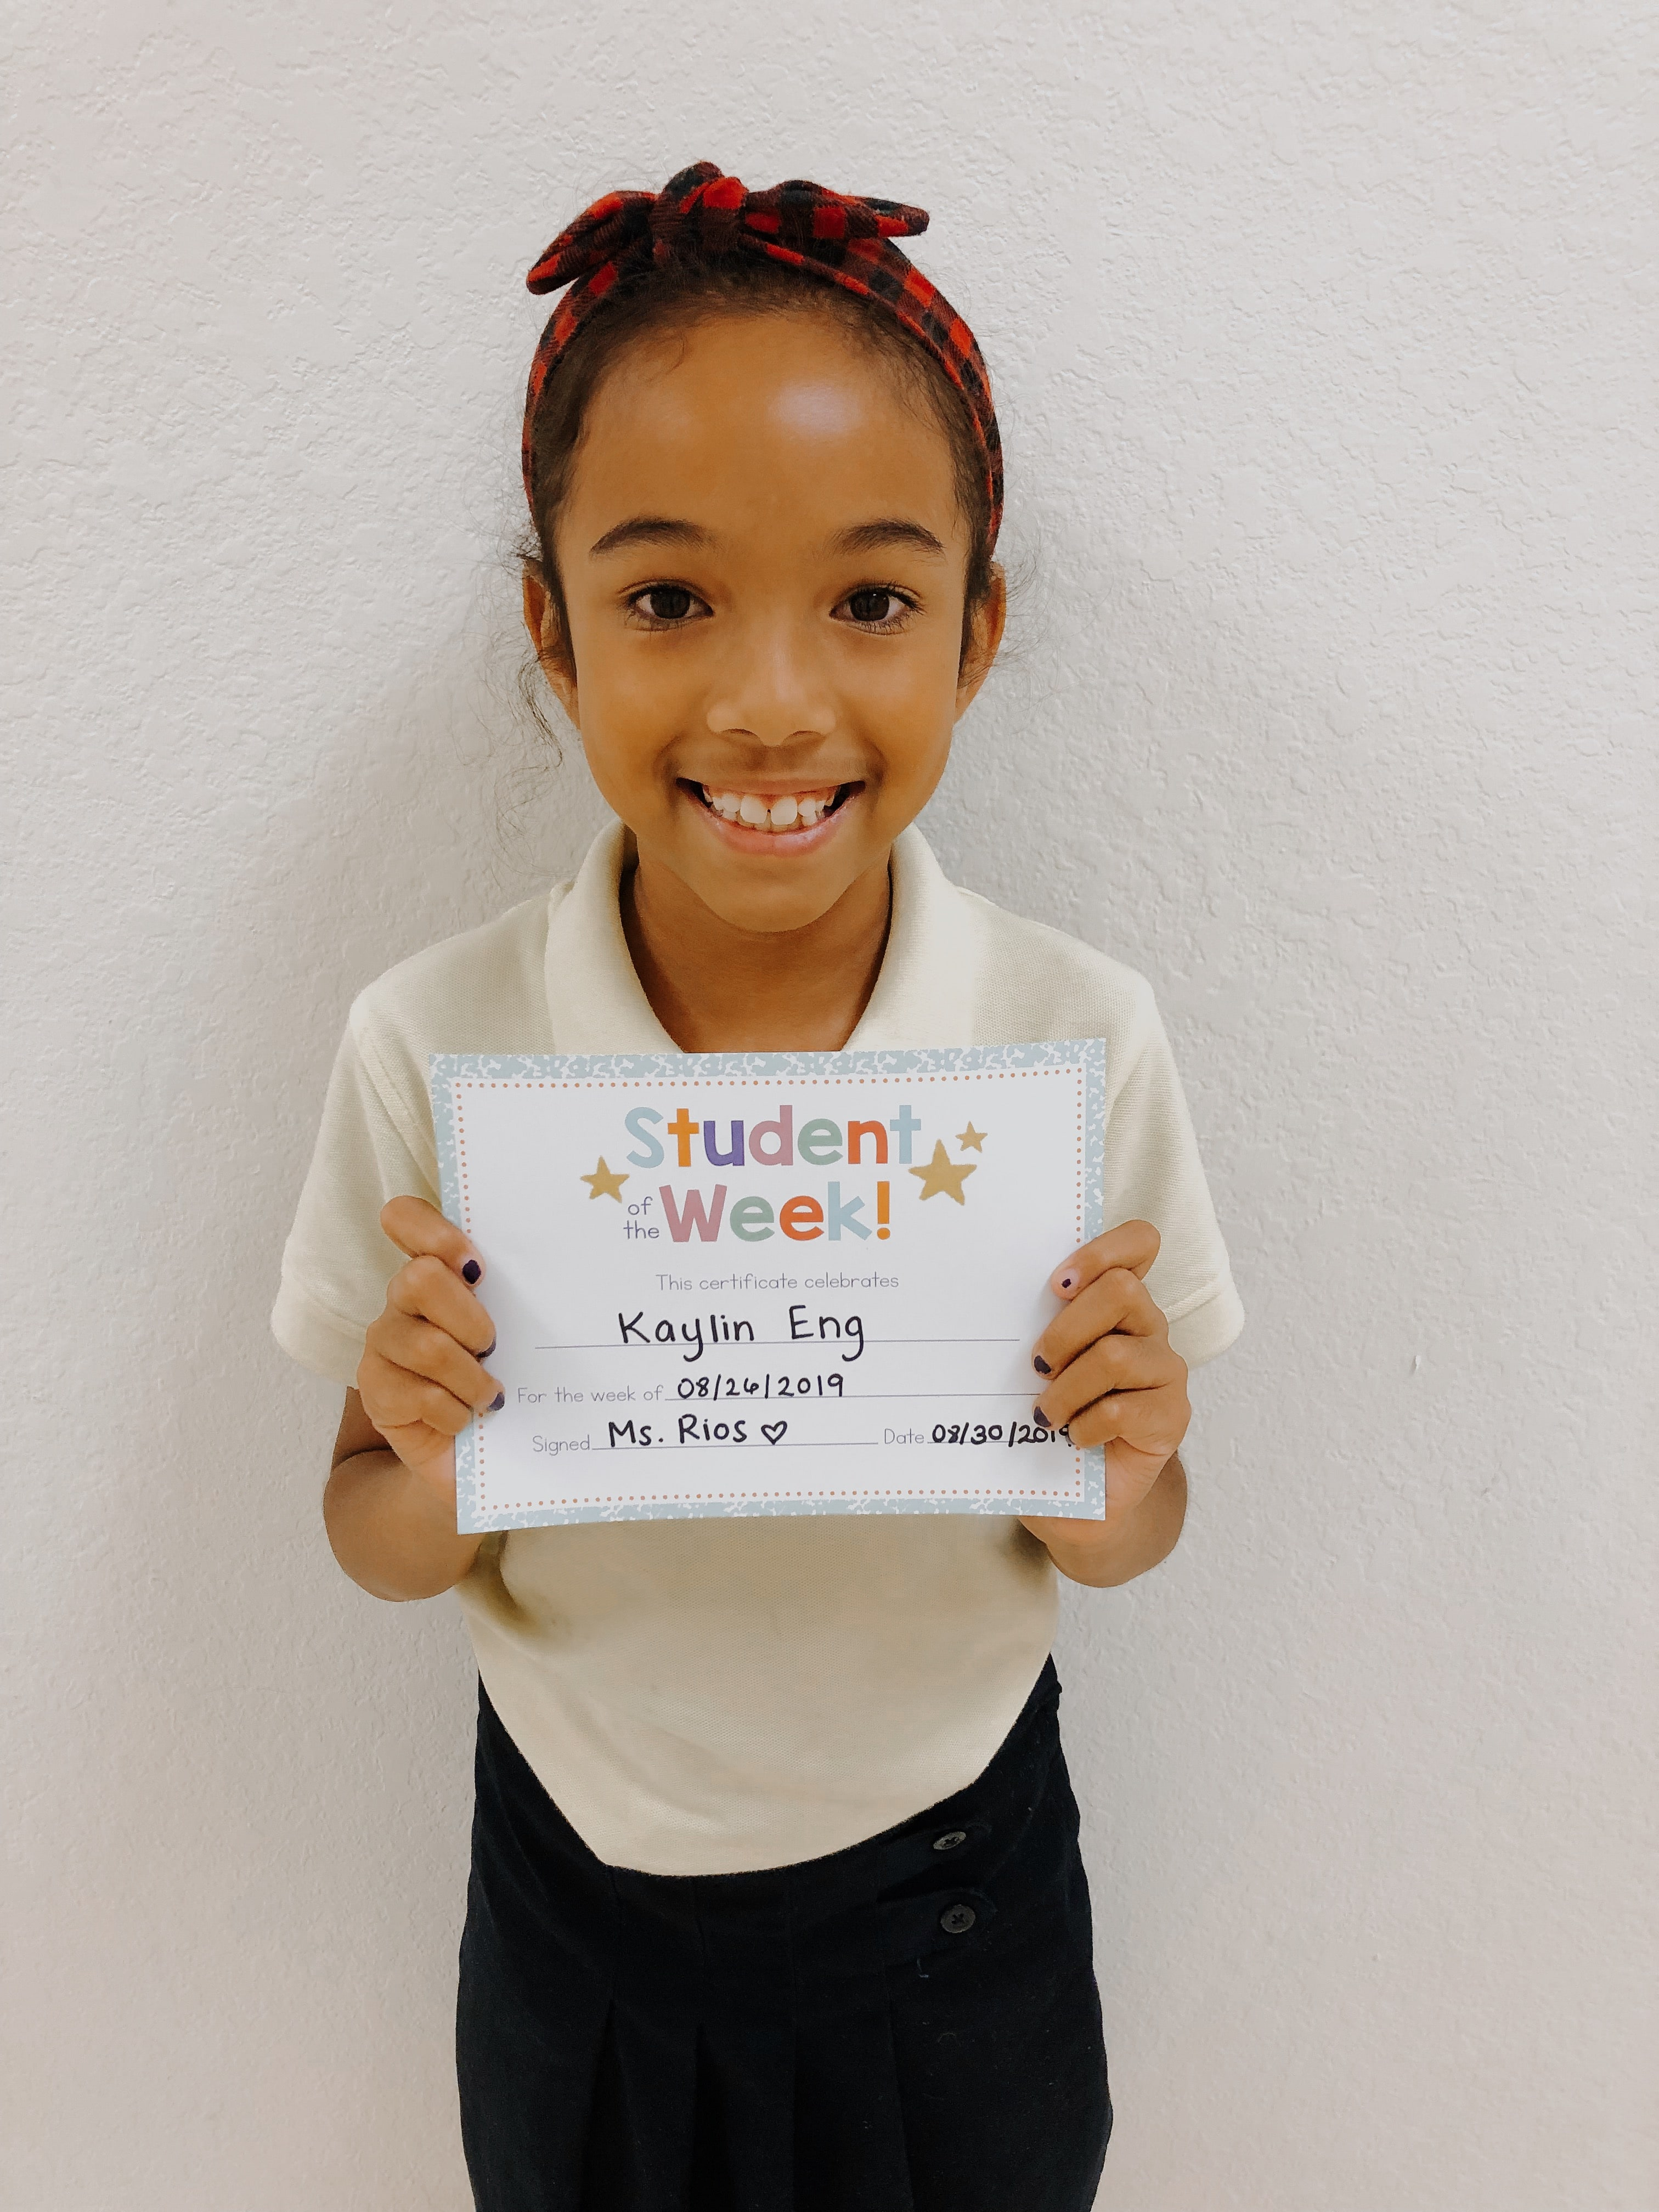 STUDENT OF THE WEEK! Image number 6